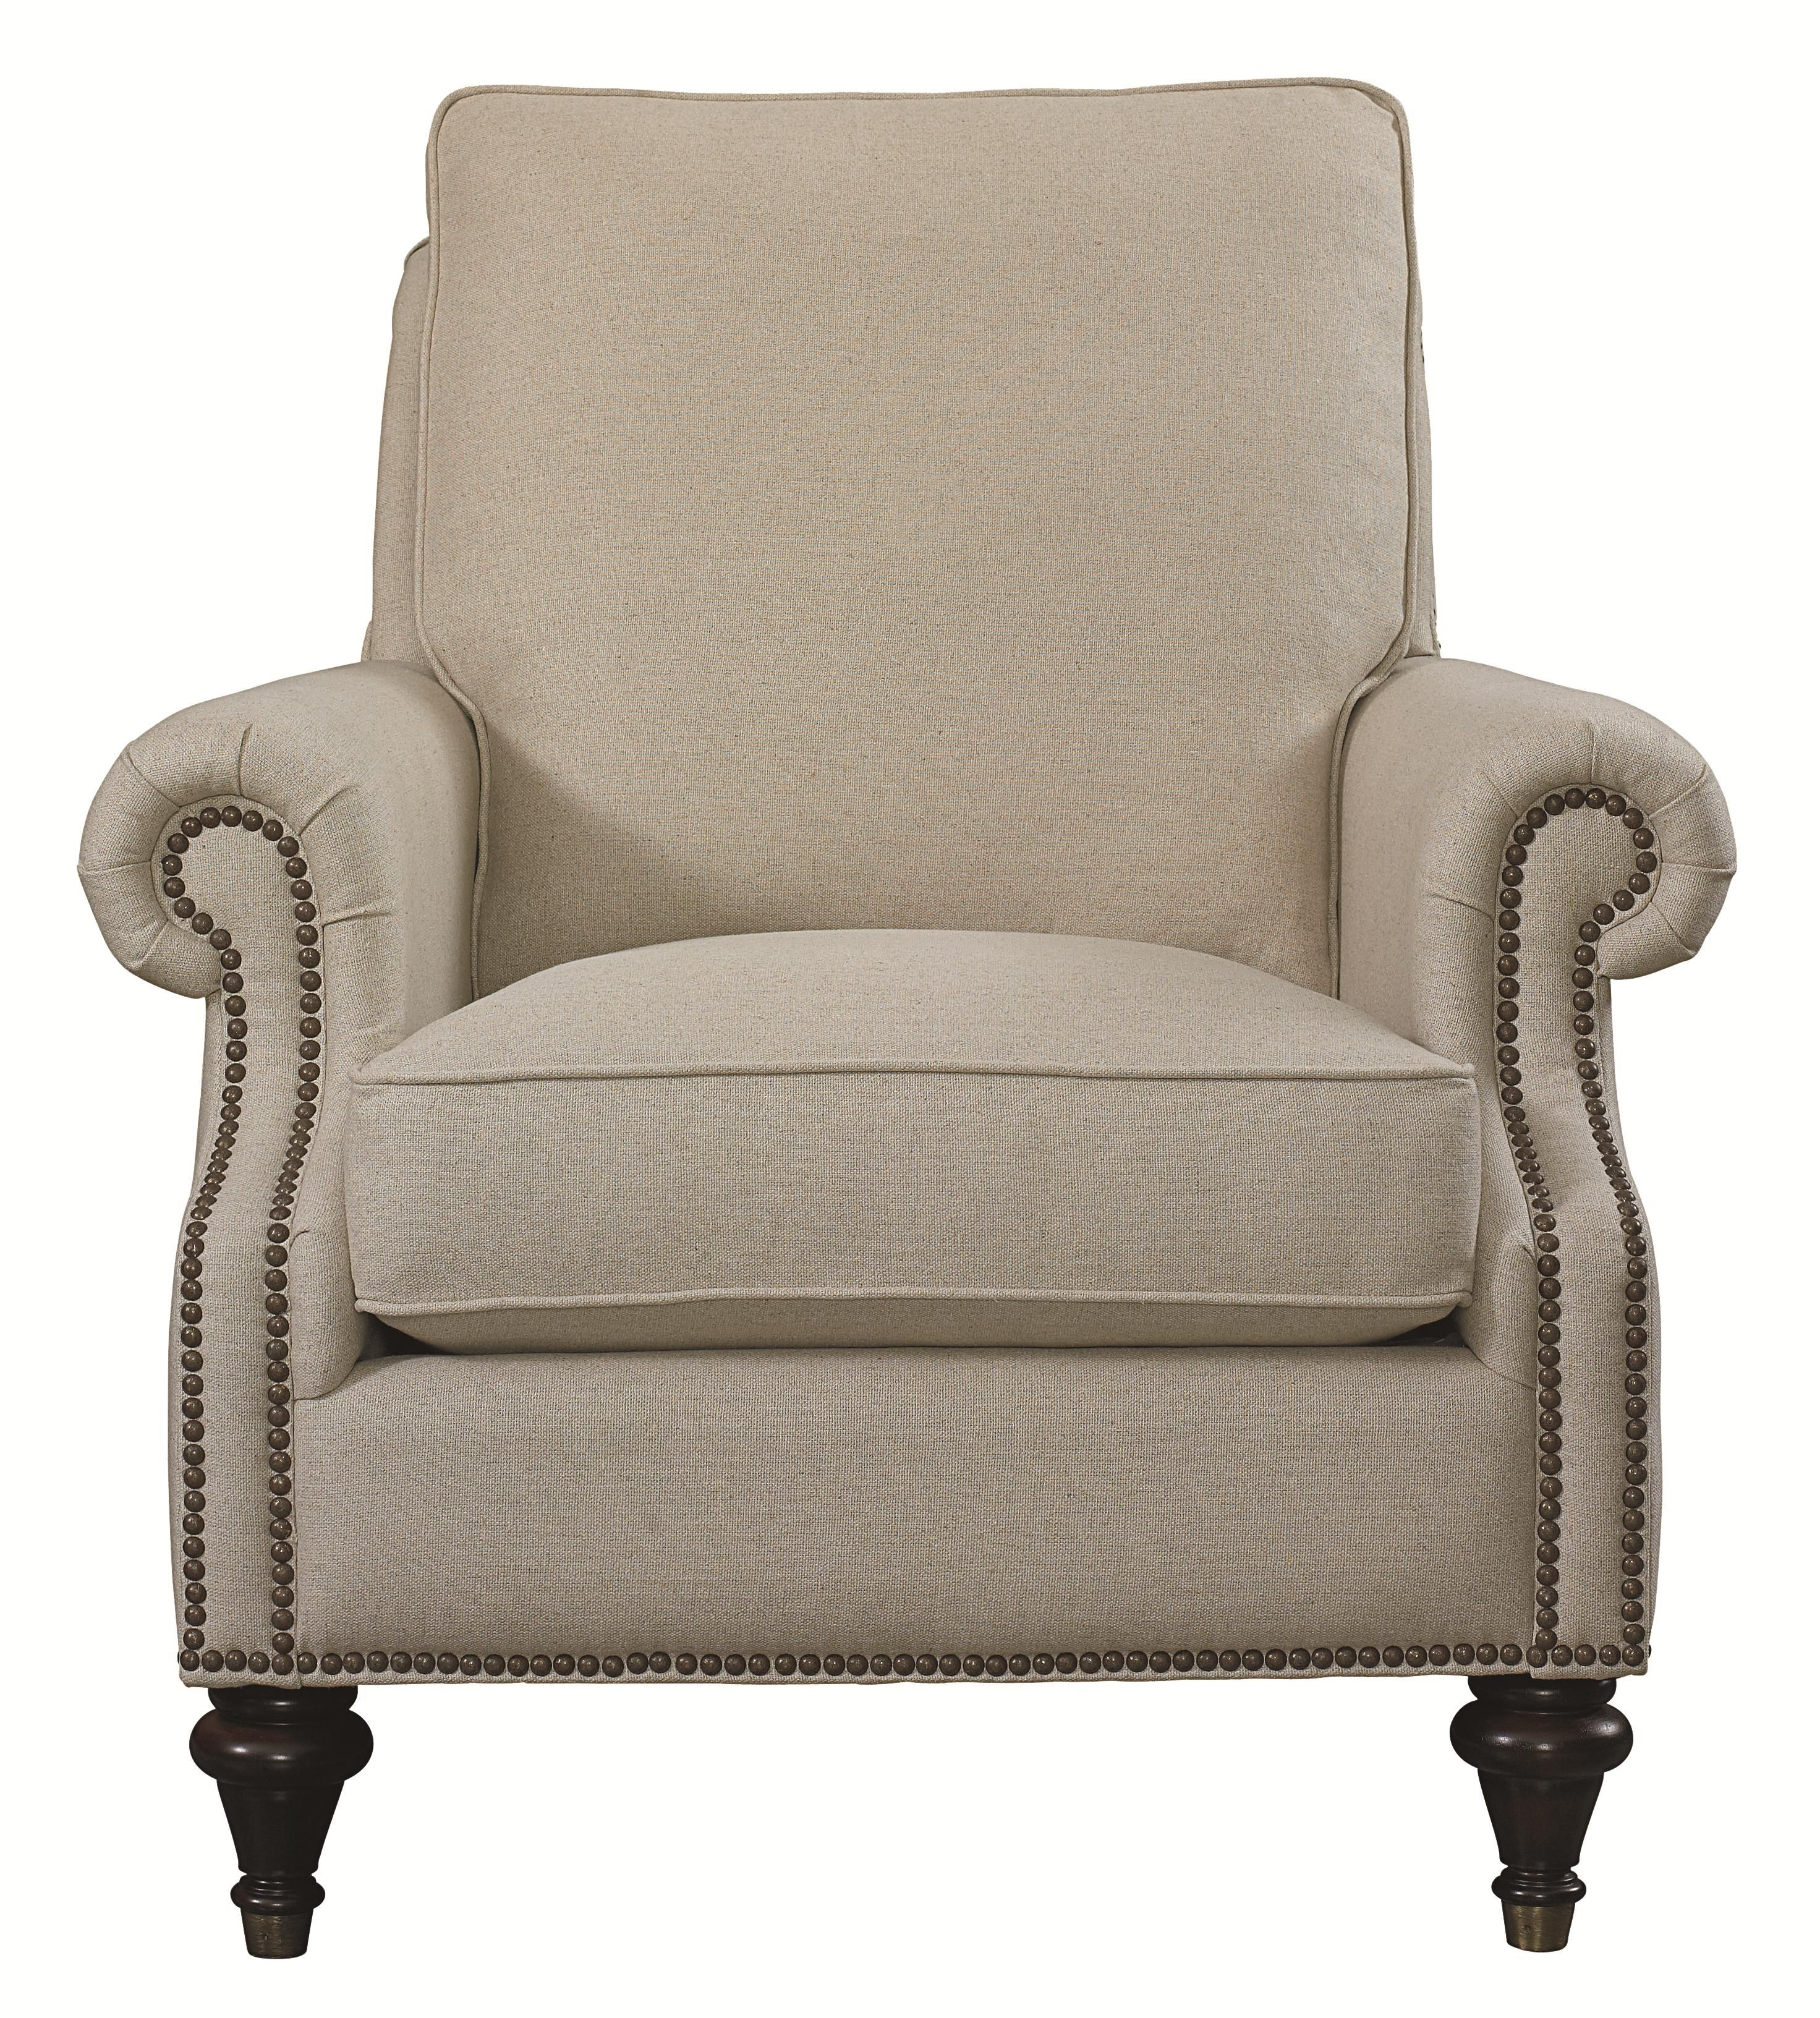 Best Accent Chairs Oxford Accent Chair By Bassett Accent 400 x 300